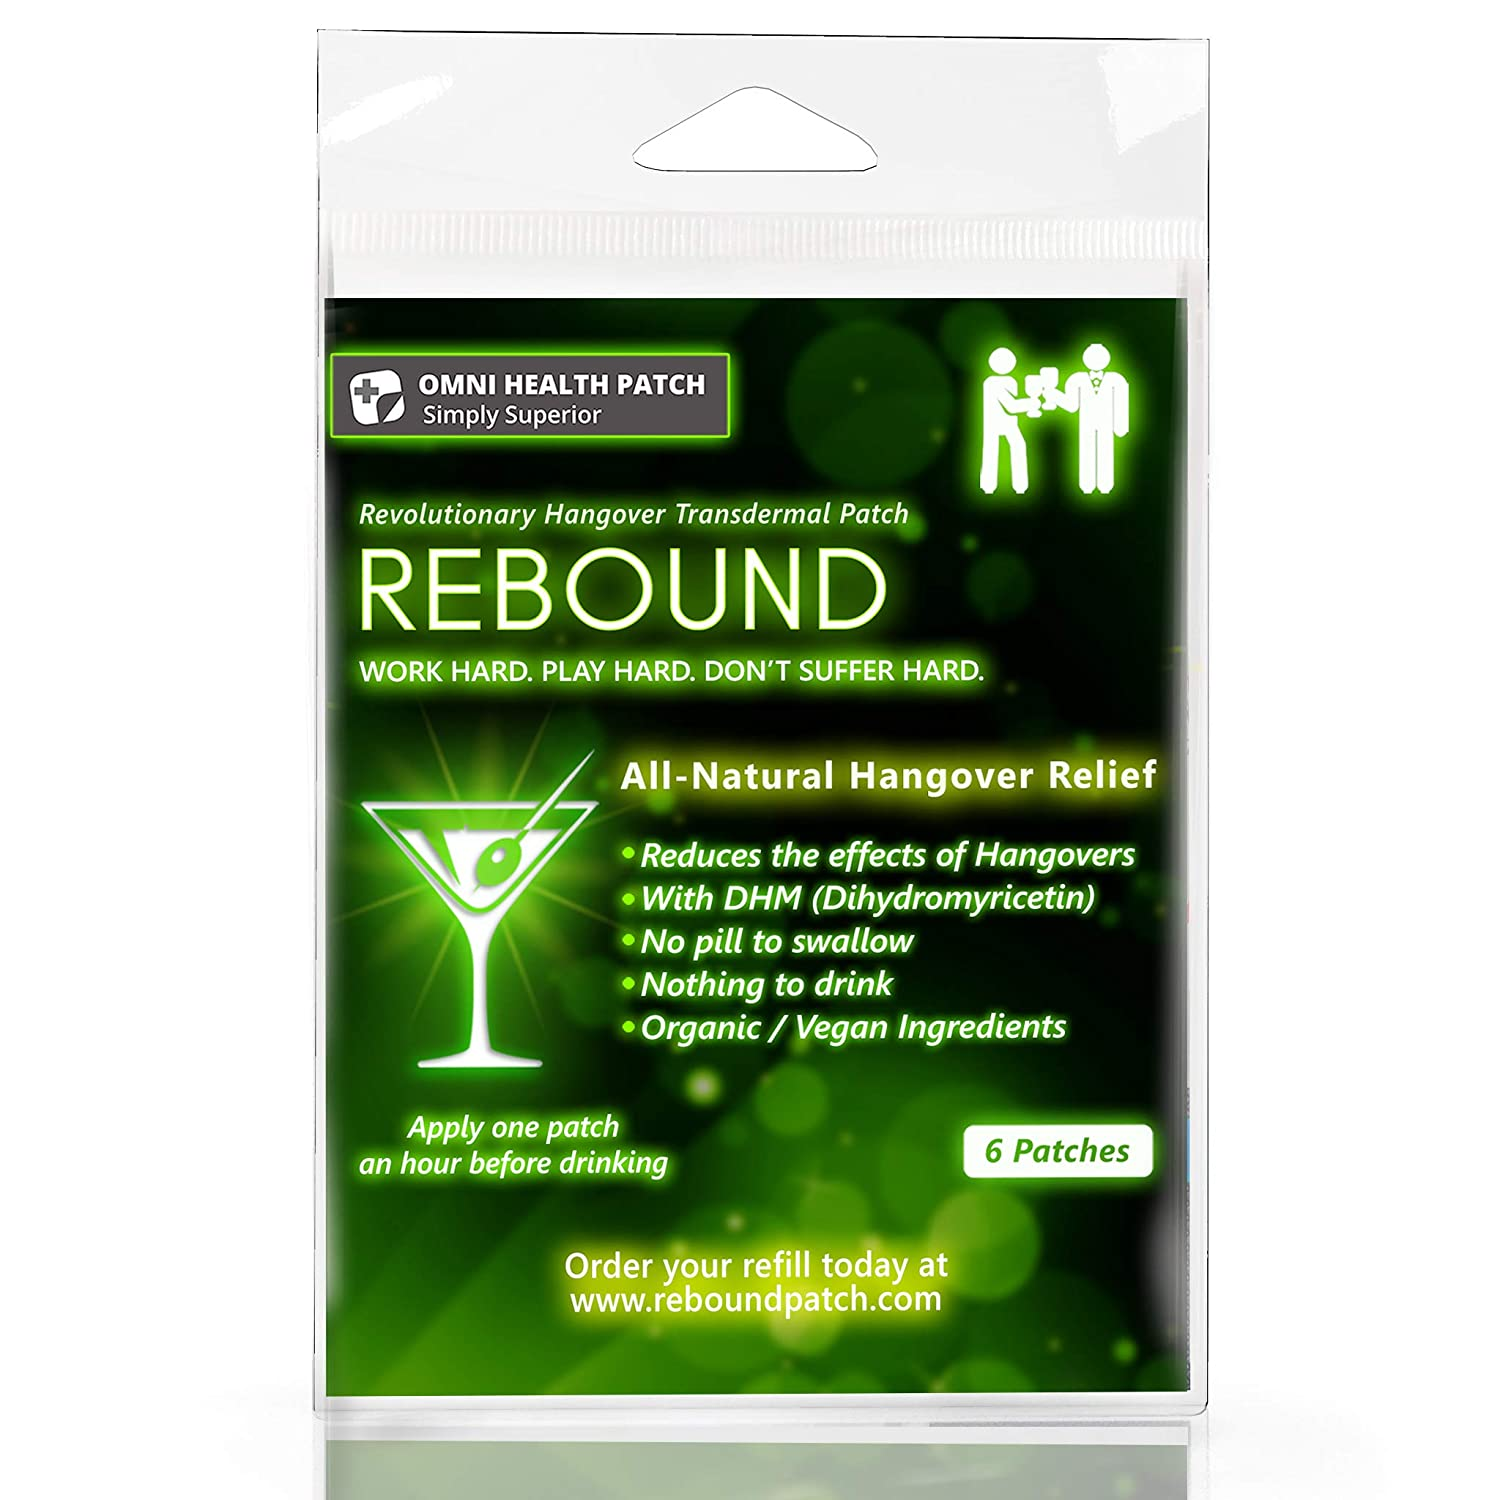 Amazon.com: Rebound Hangover Patch 6-Day Supply Pack - Made in USA (6 Patches) - $6.99 - Organic Vegan - Sugar, Latex, Gluten Free: Health & Personal Care